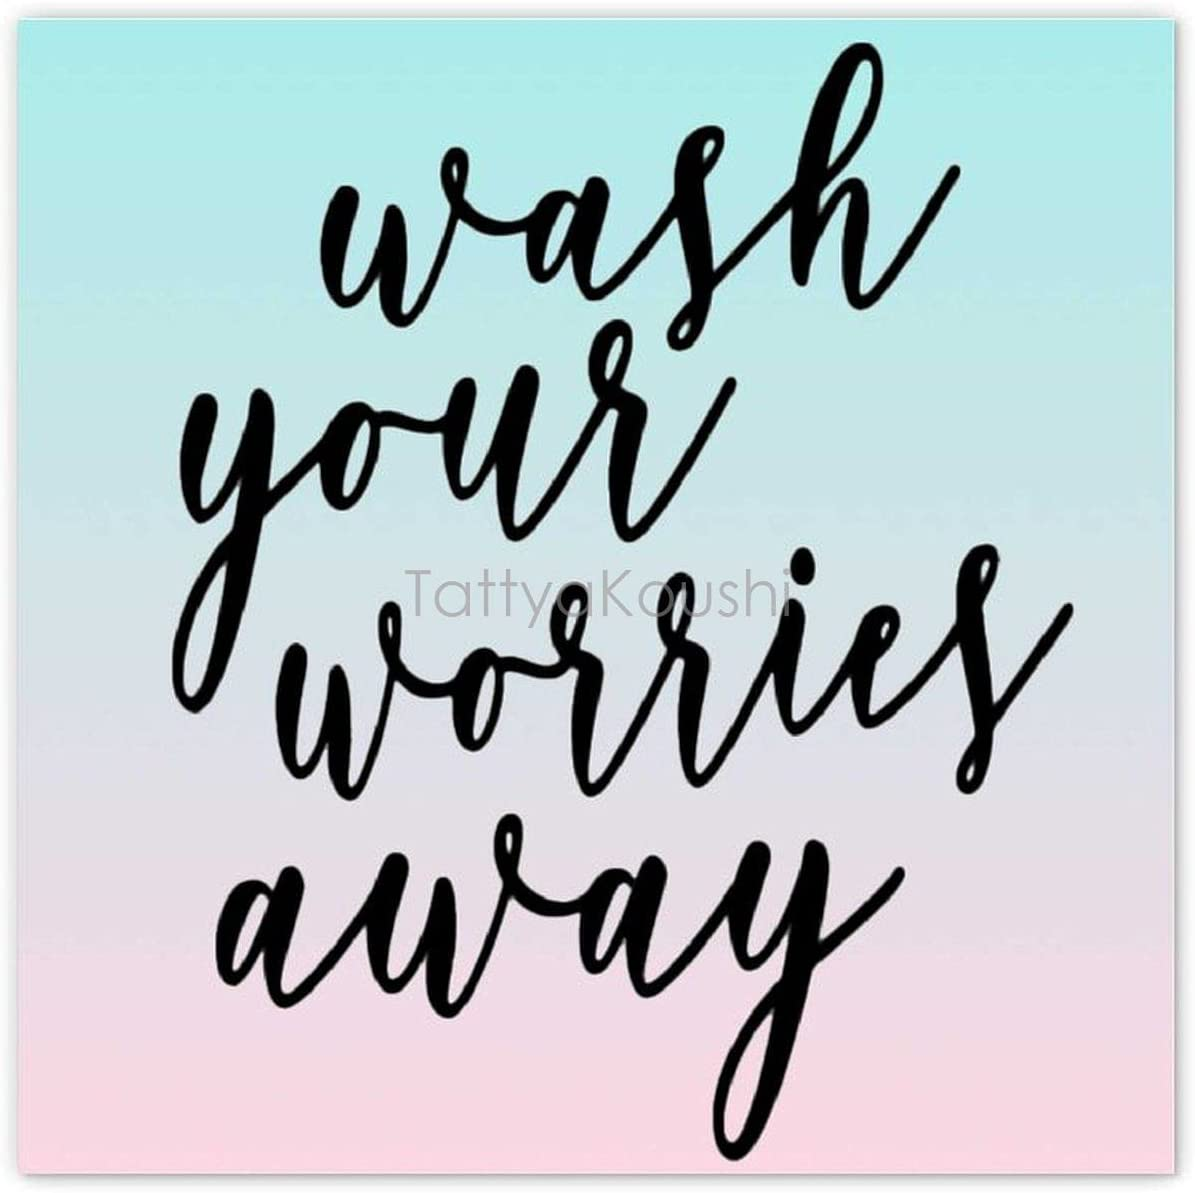 Wall Art Home Decor, Wash Your Worries Away Canvas Prints Home Decoration Canvas for Wall to Print Framed, Wall Hanging Art, 12